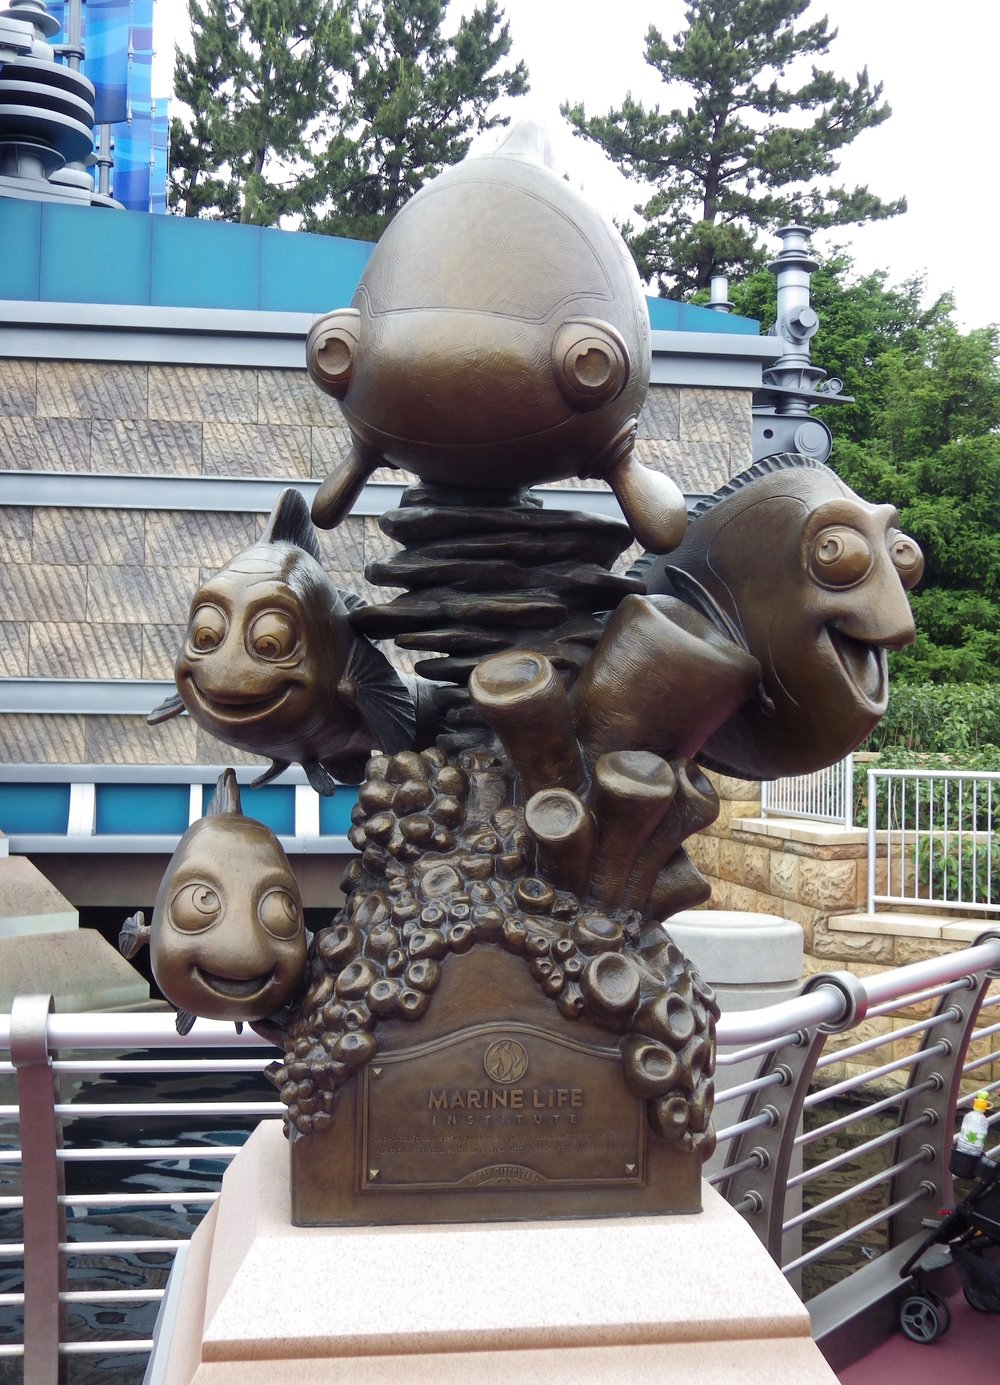 DisneySea-SeaRider-010-13x18.jpg